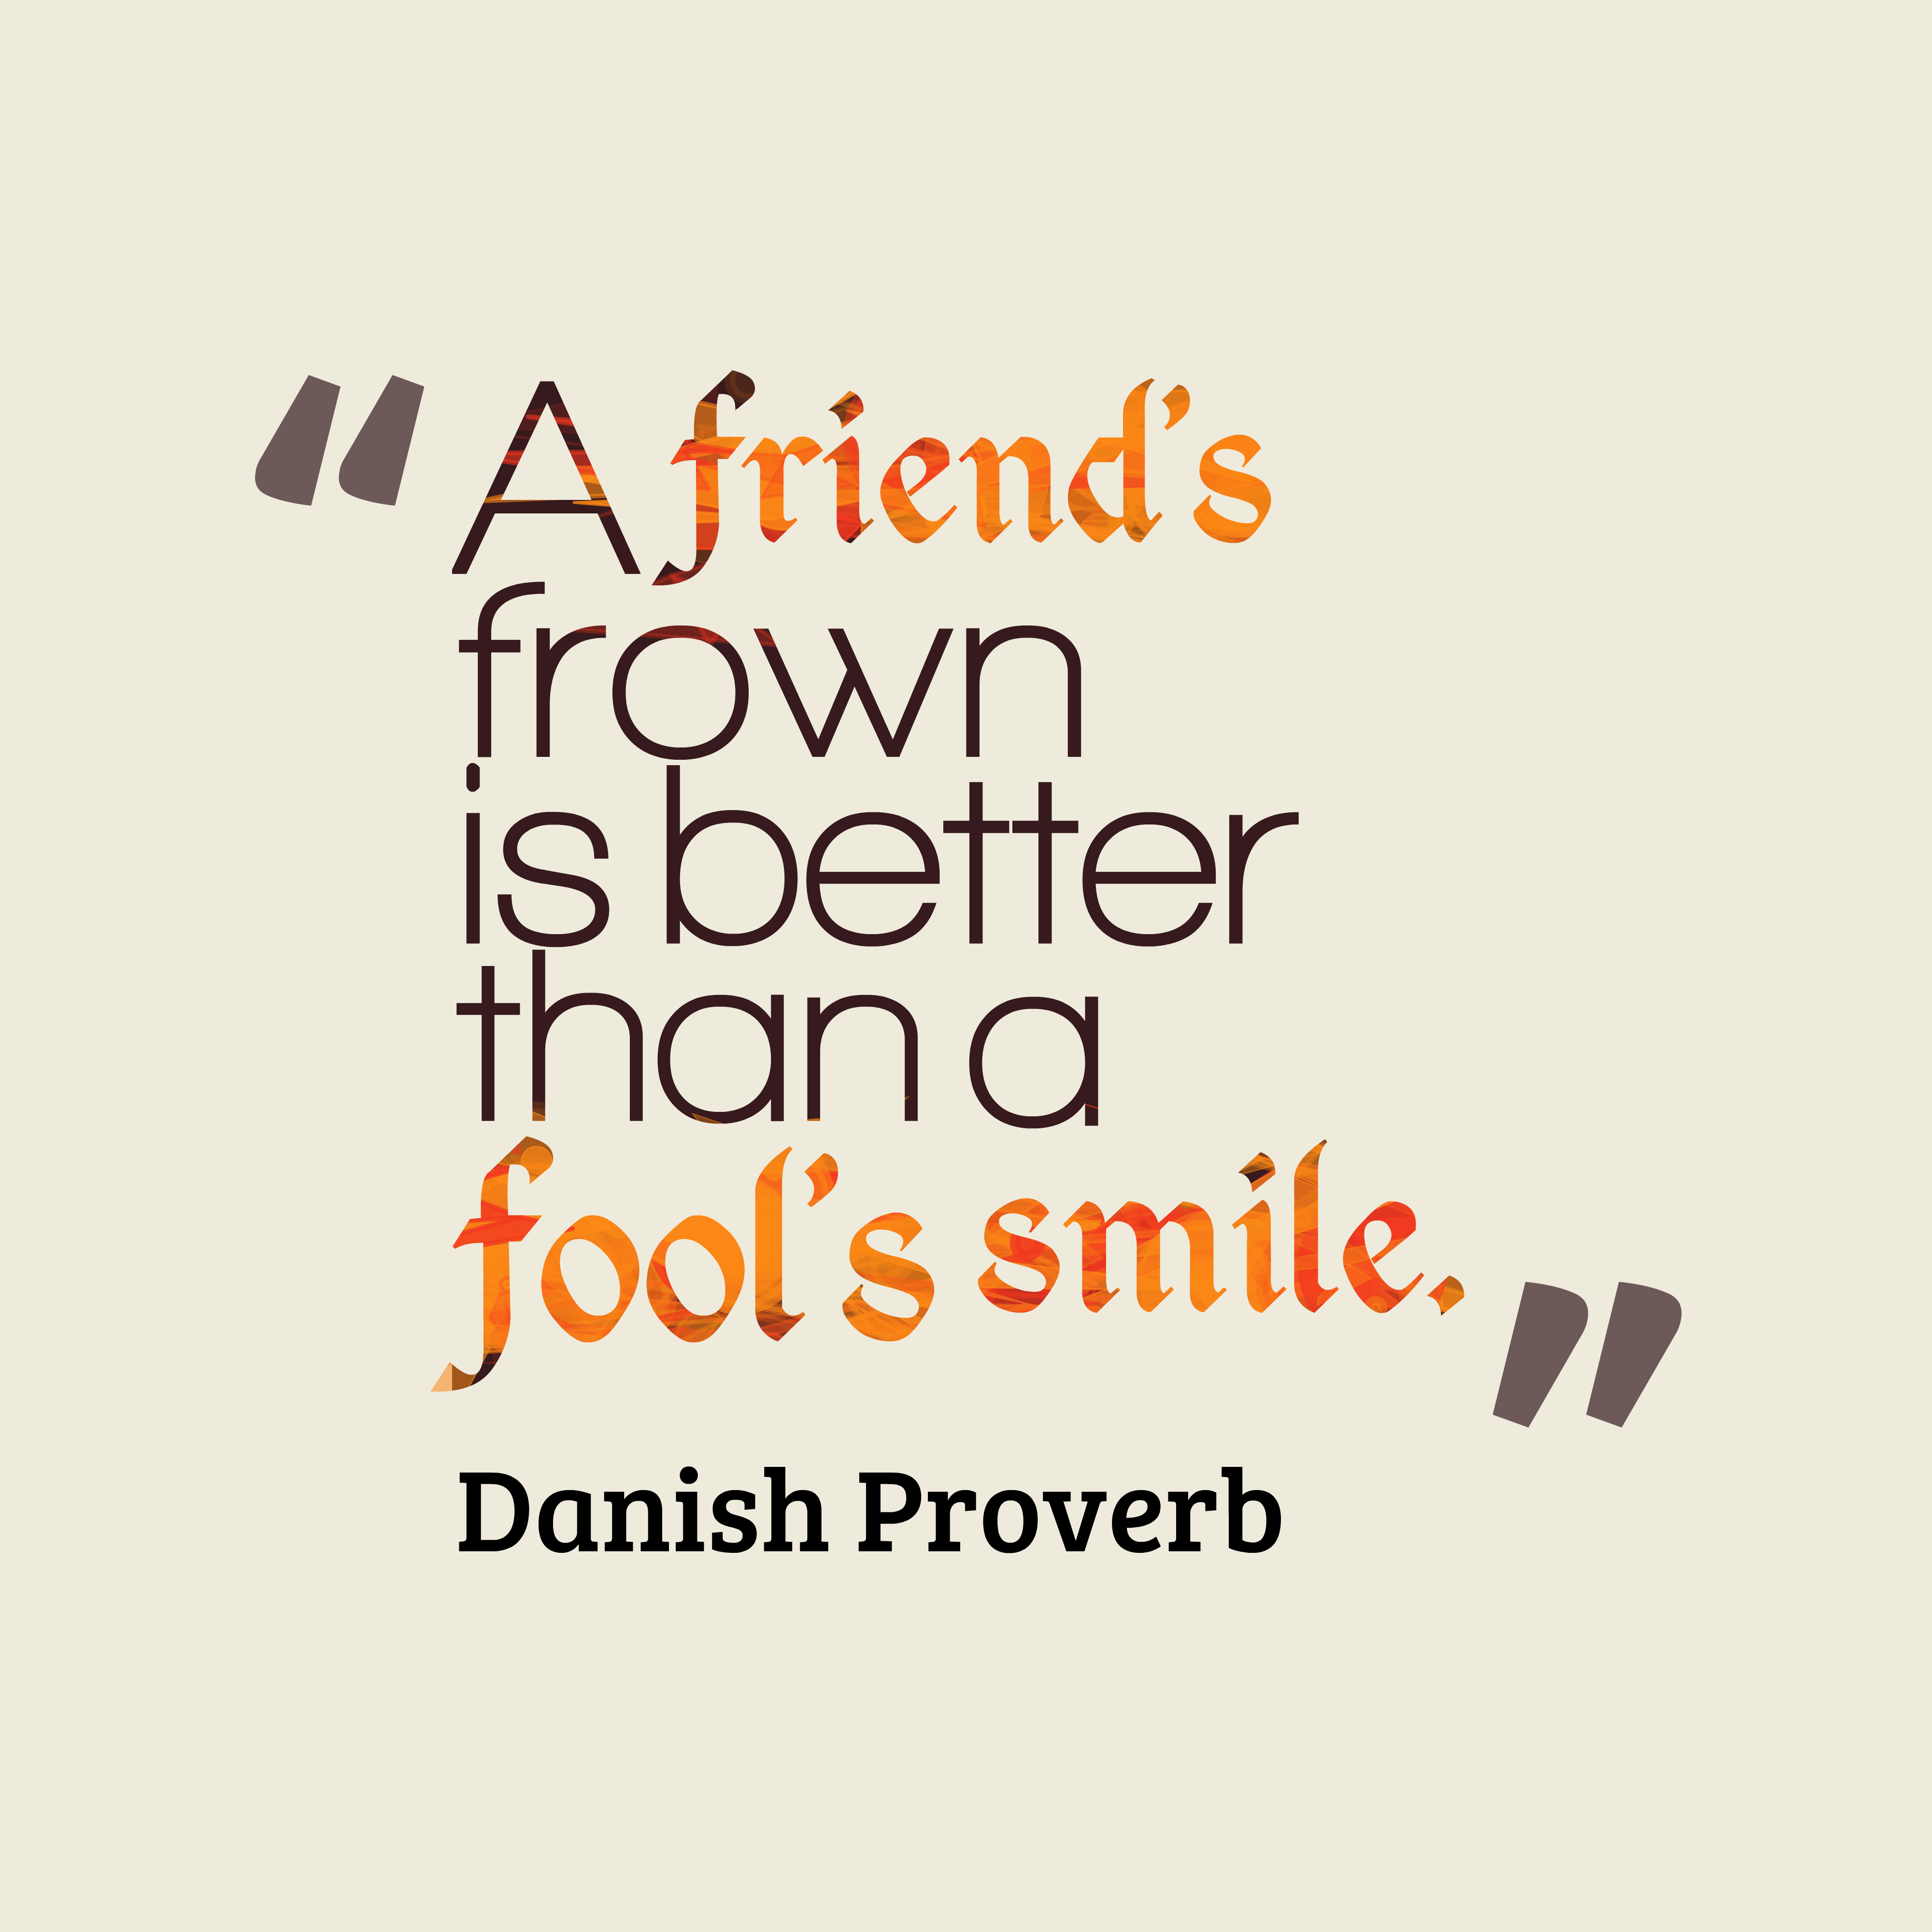 Danish Proverb About Friendship